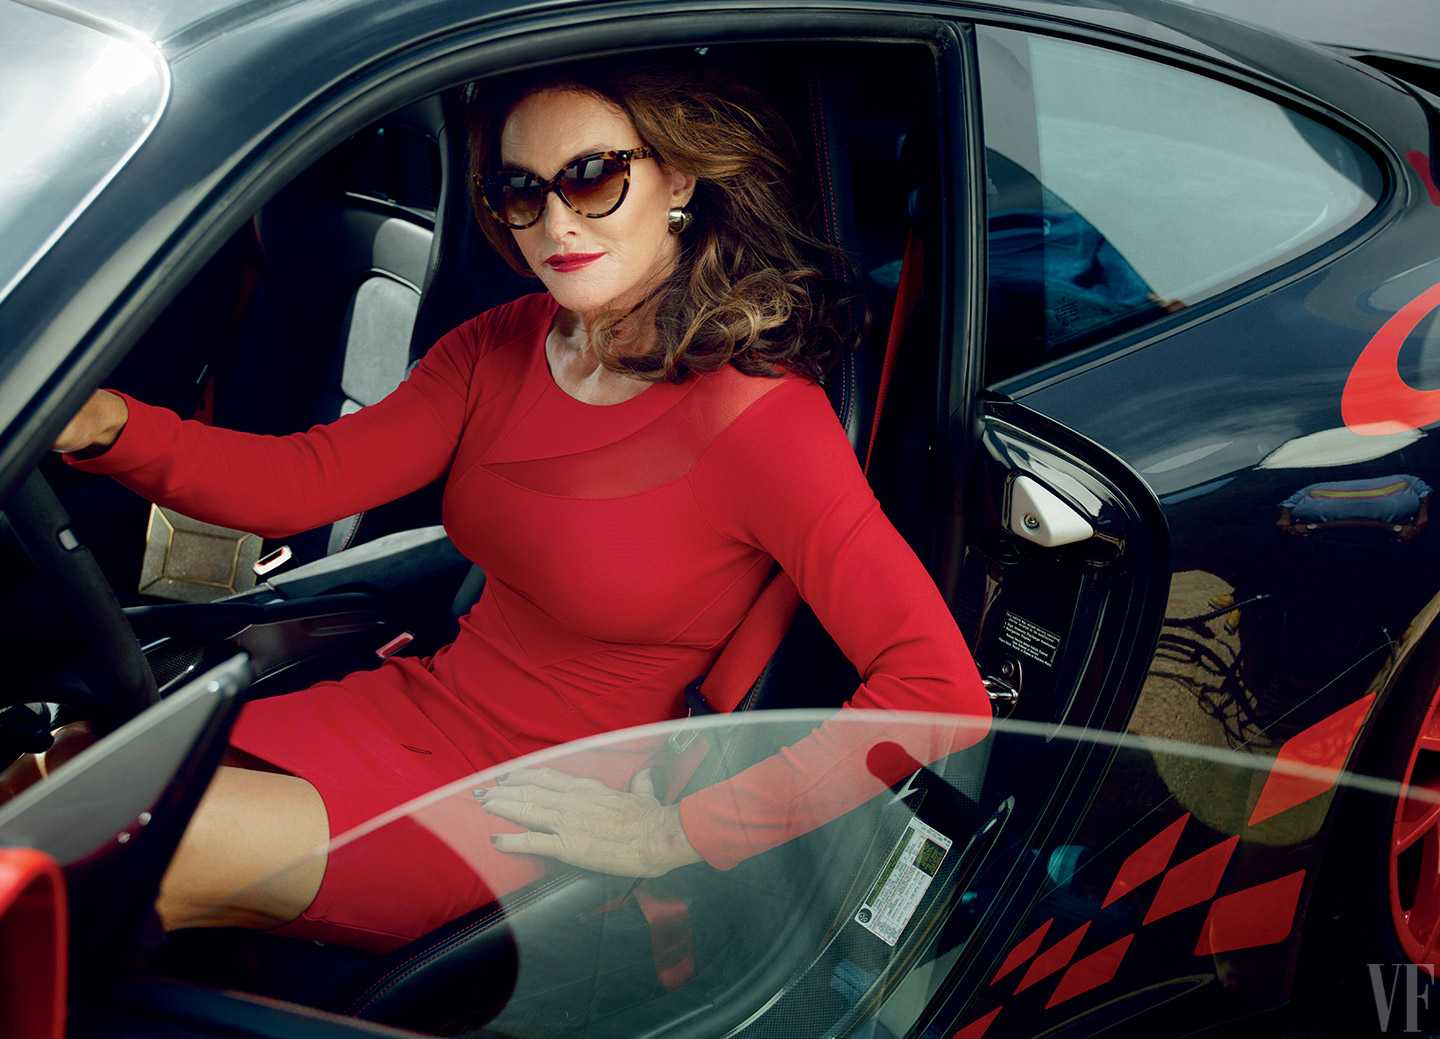 FIRST LOOK: Caitlyn Jenner's Docu-Series Gets Premiere Date | caitlyn jenner